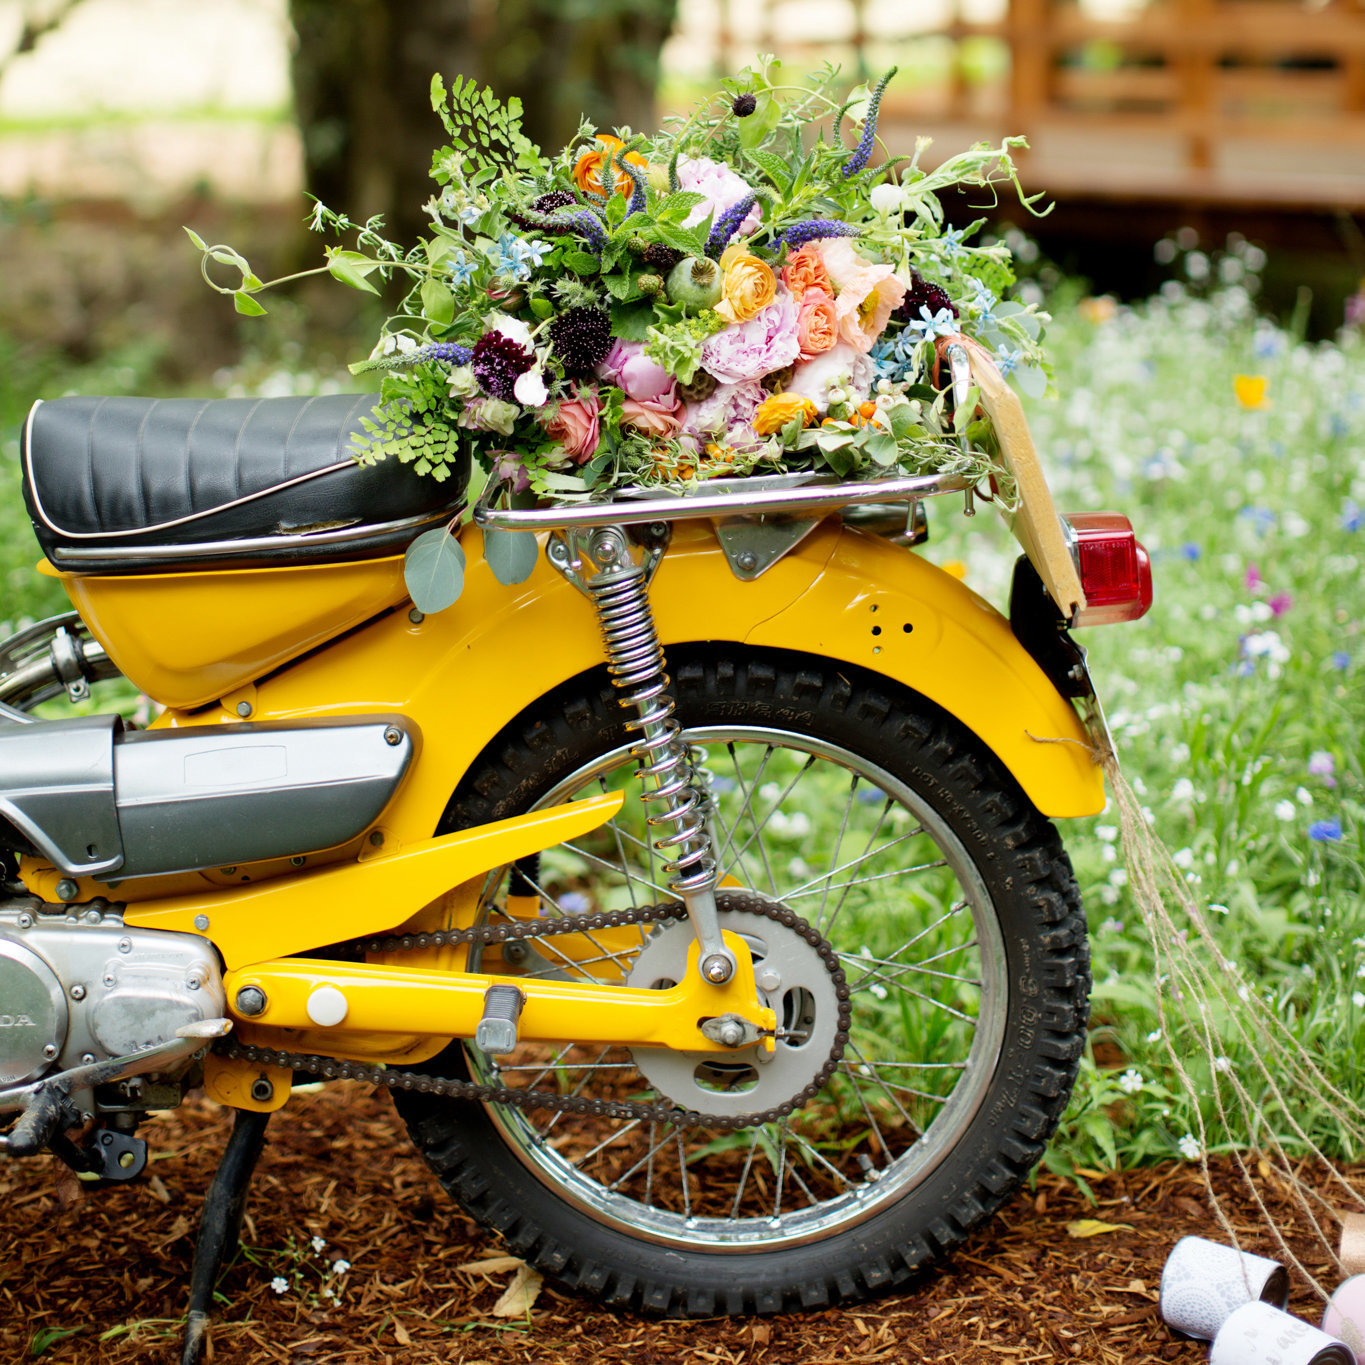 a pretty wildflower bouquet sits atop a bright yellow motorcycle that has just married cans tied to the back